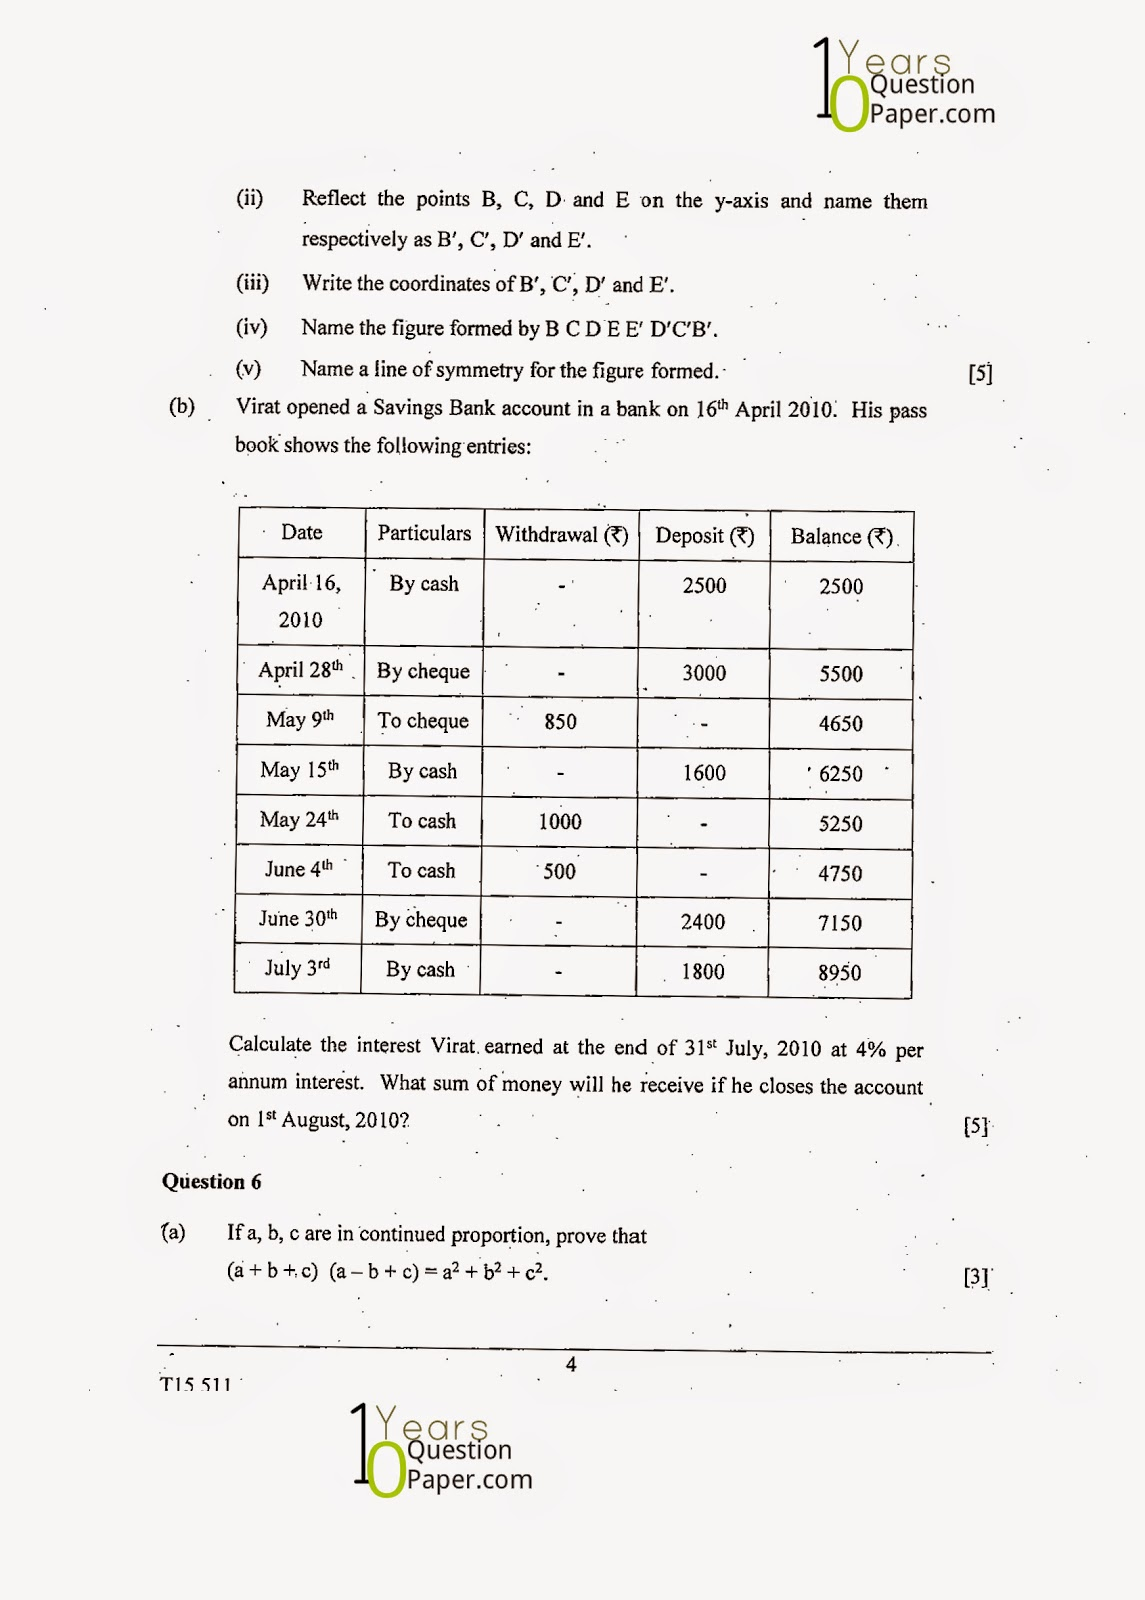 Icse 2015 mathematics class x 10 years question paper icse 2015 class 10th mathematics question paper malvernweather Gallery